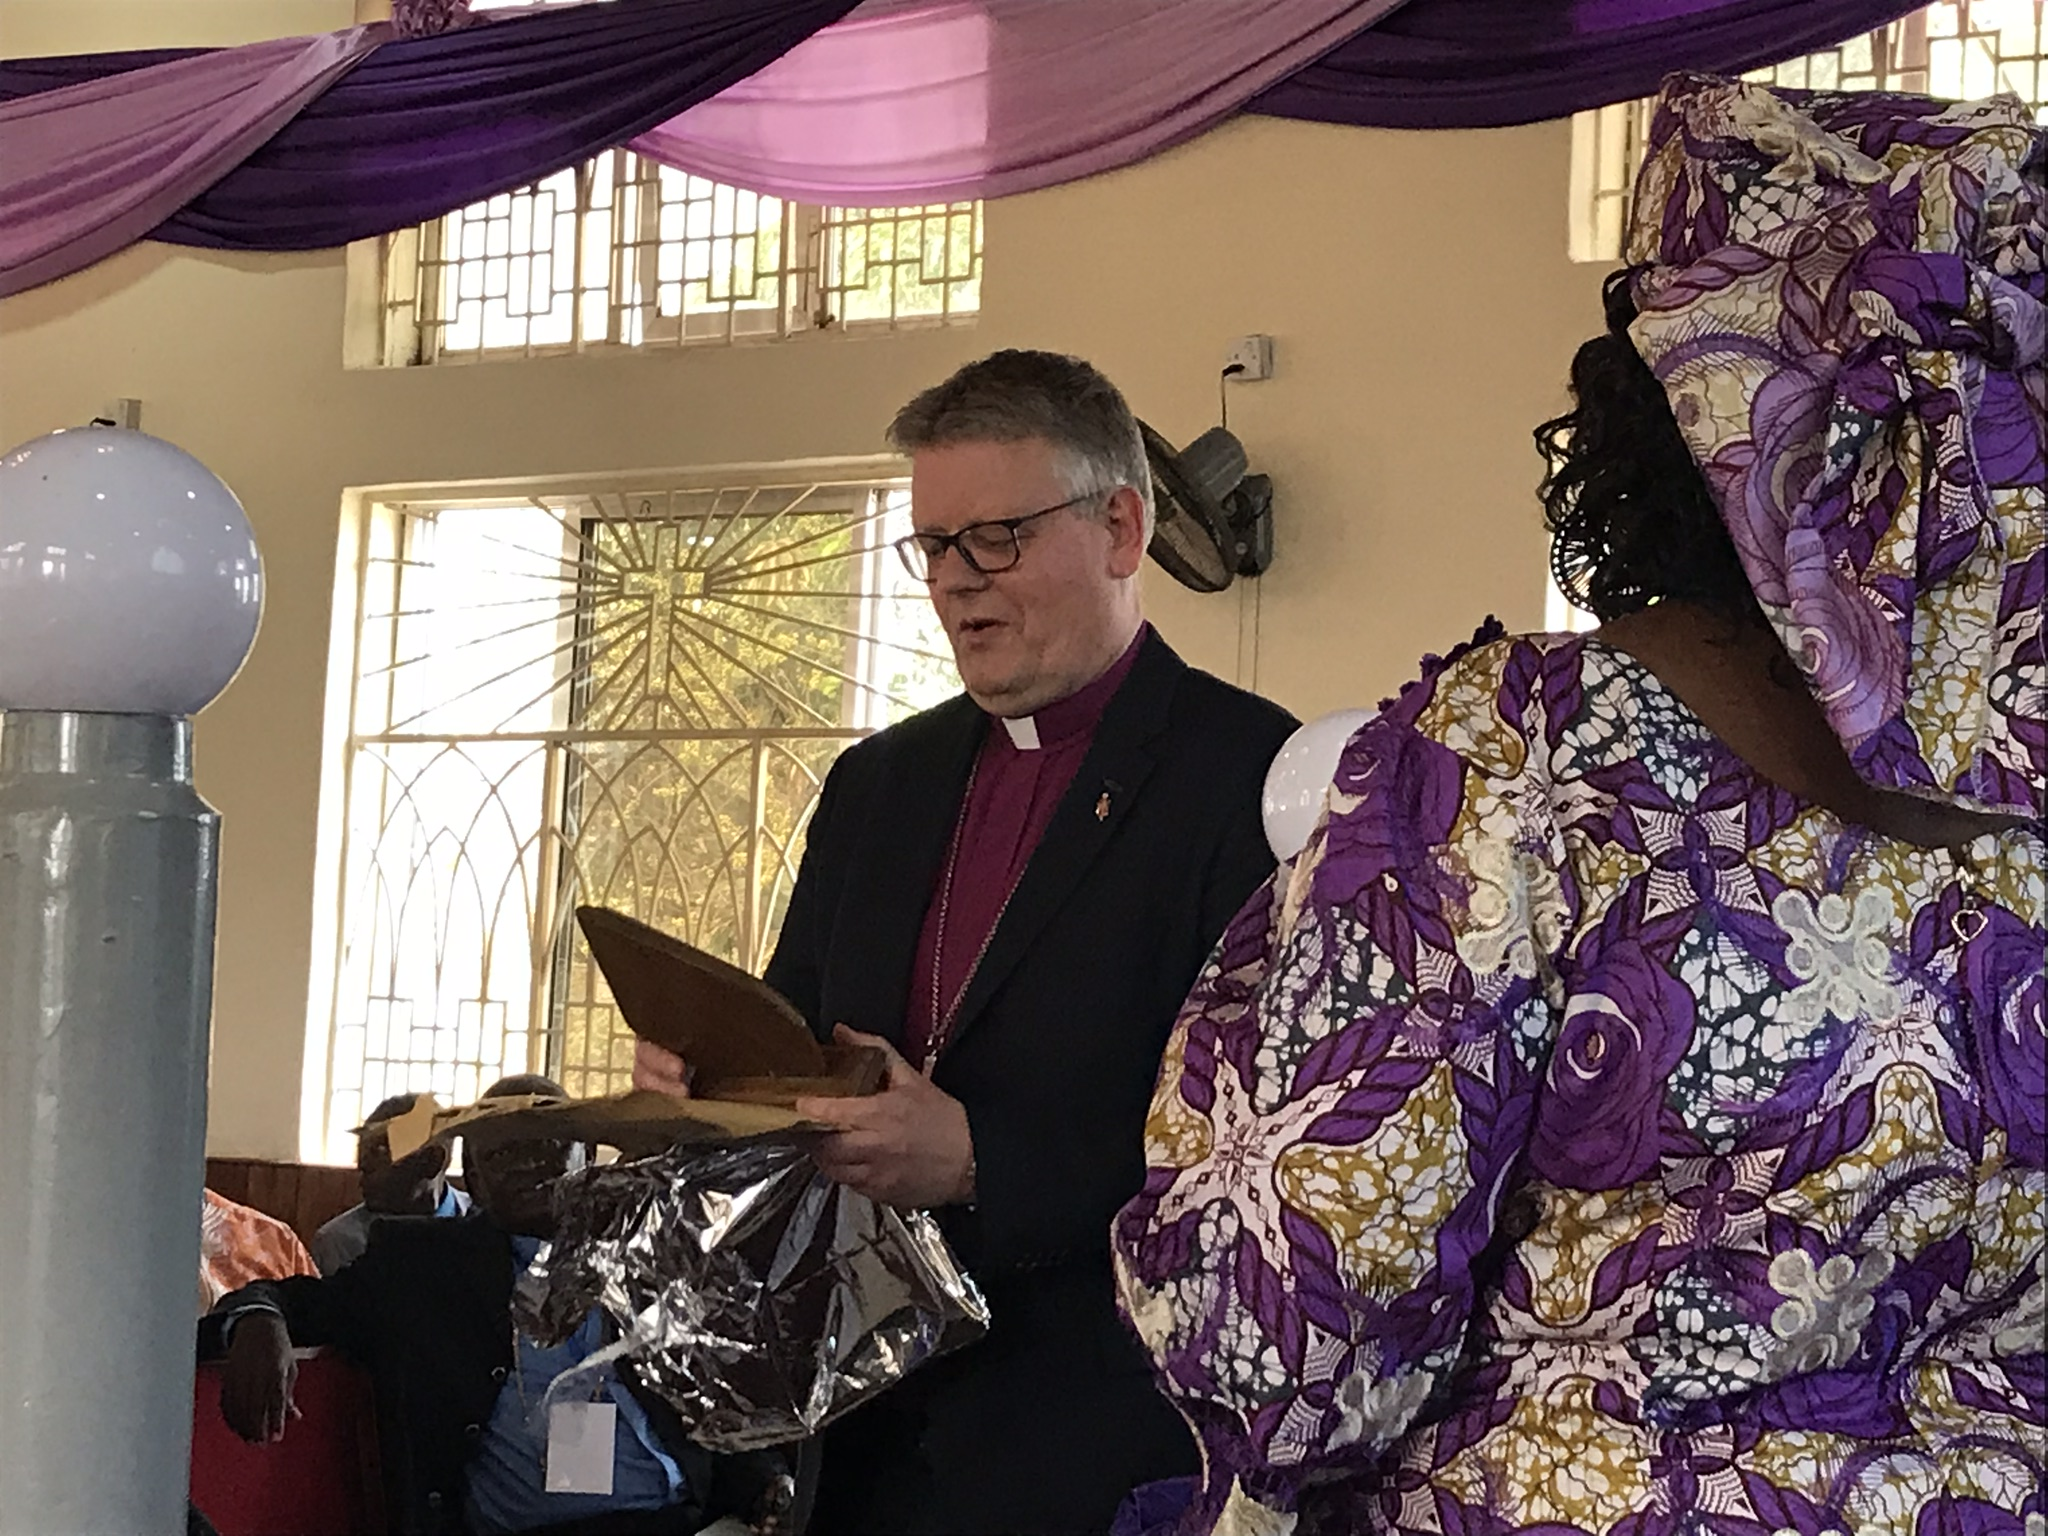 Presenting gifts to the international guests.  This is Bishop Alstead from the Baltic Area in Europe.  This is a generous gift-giving culture.